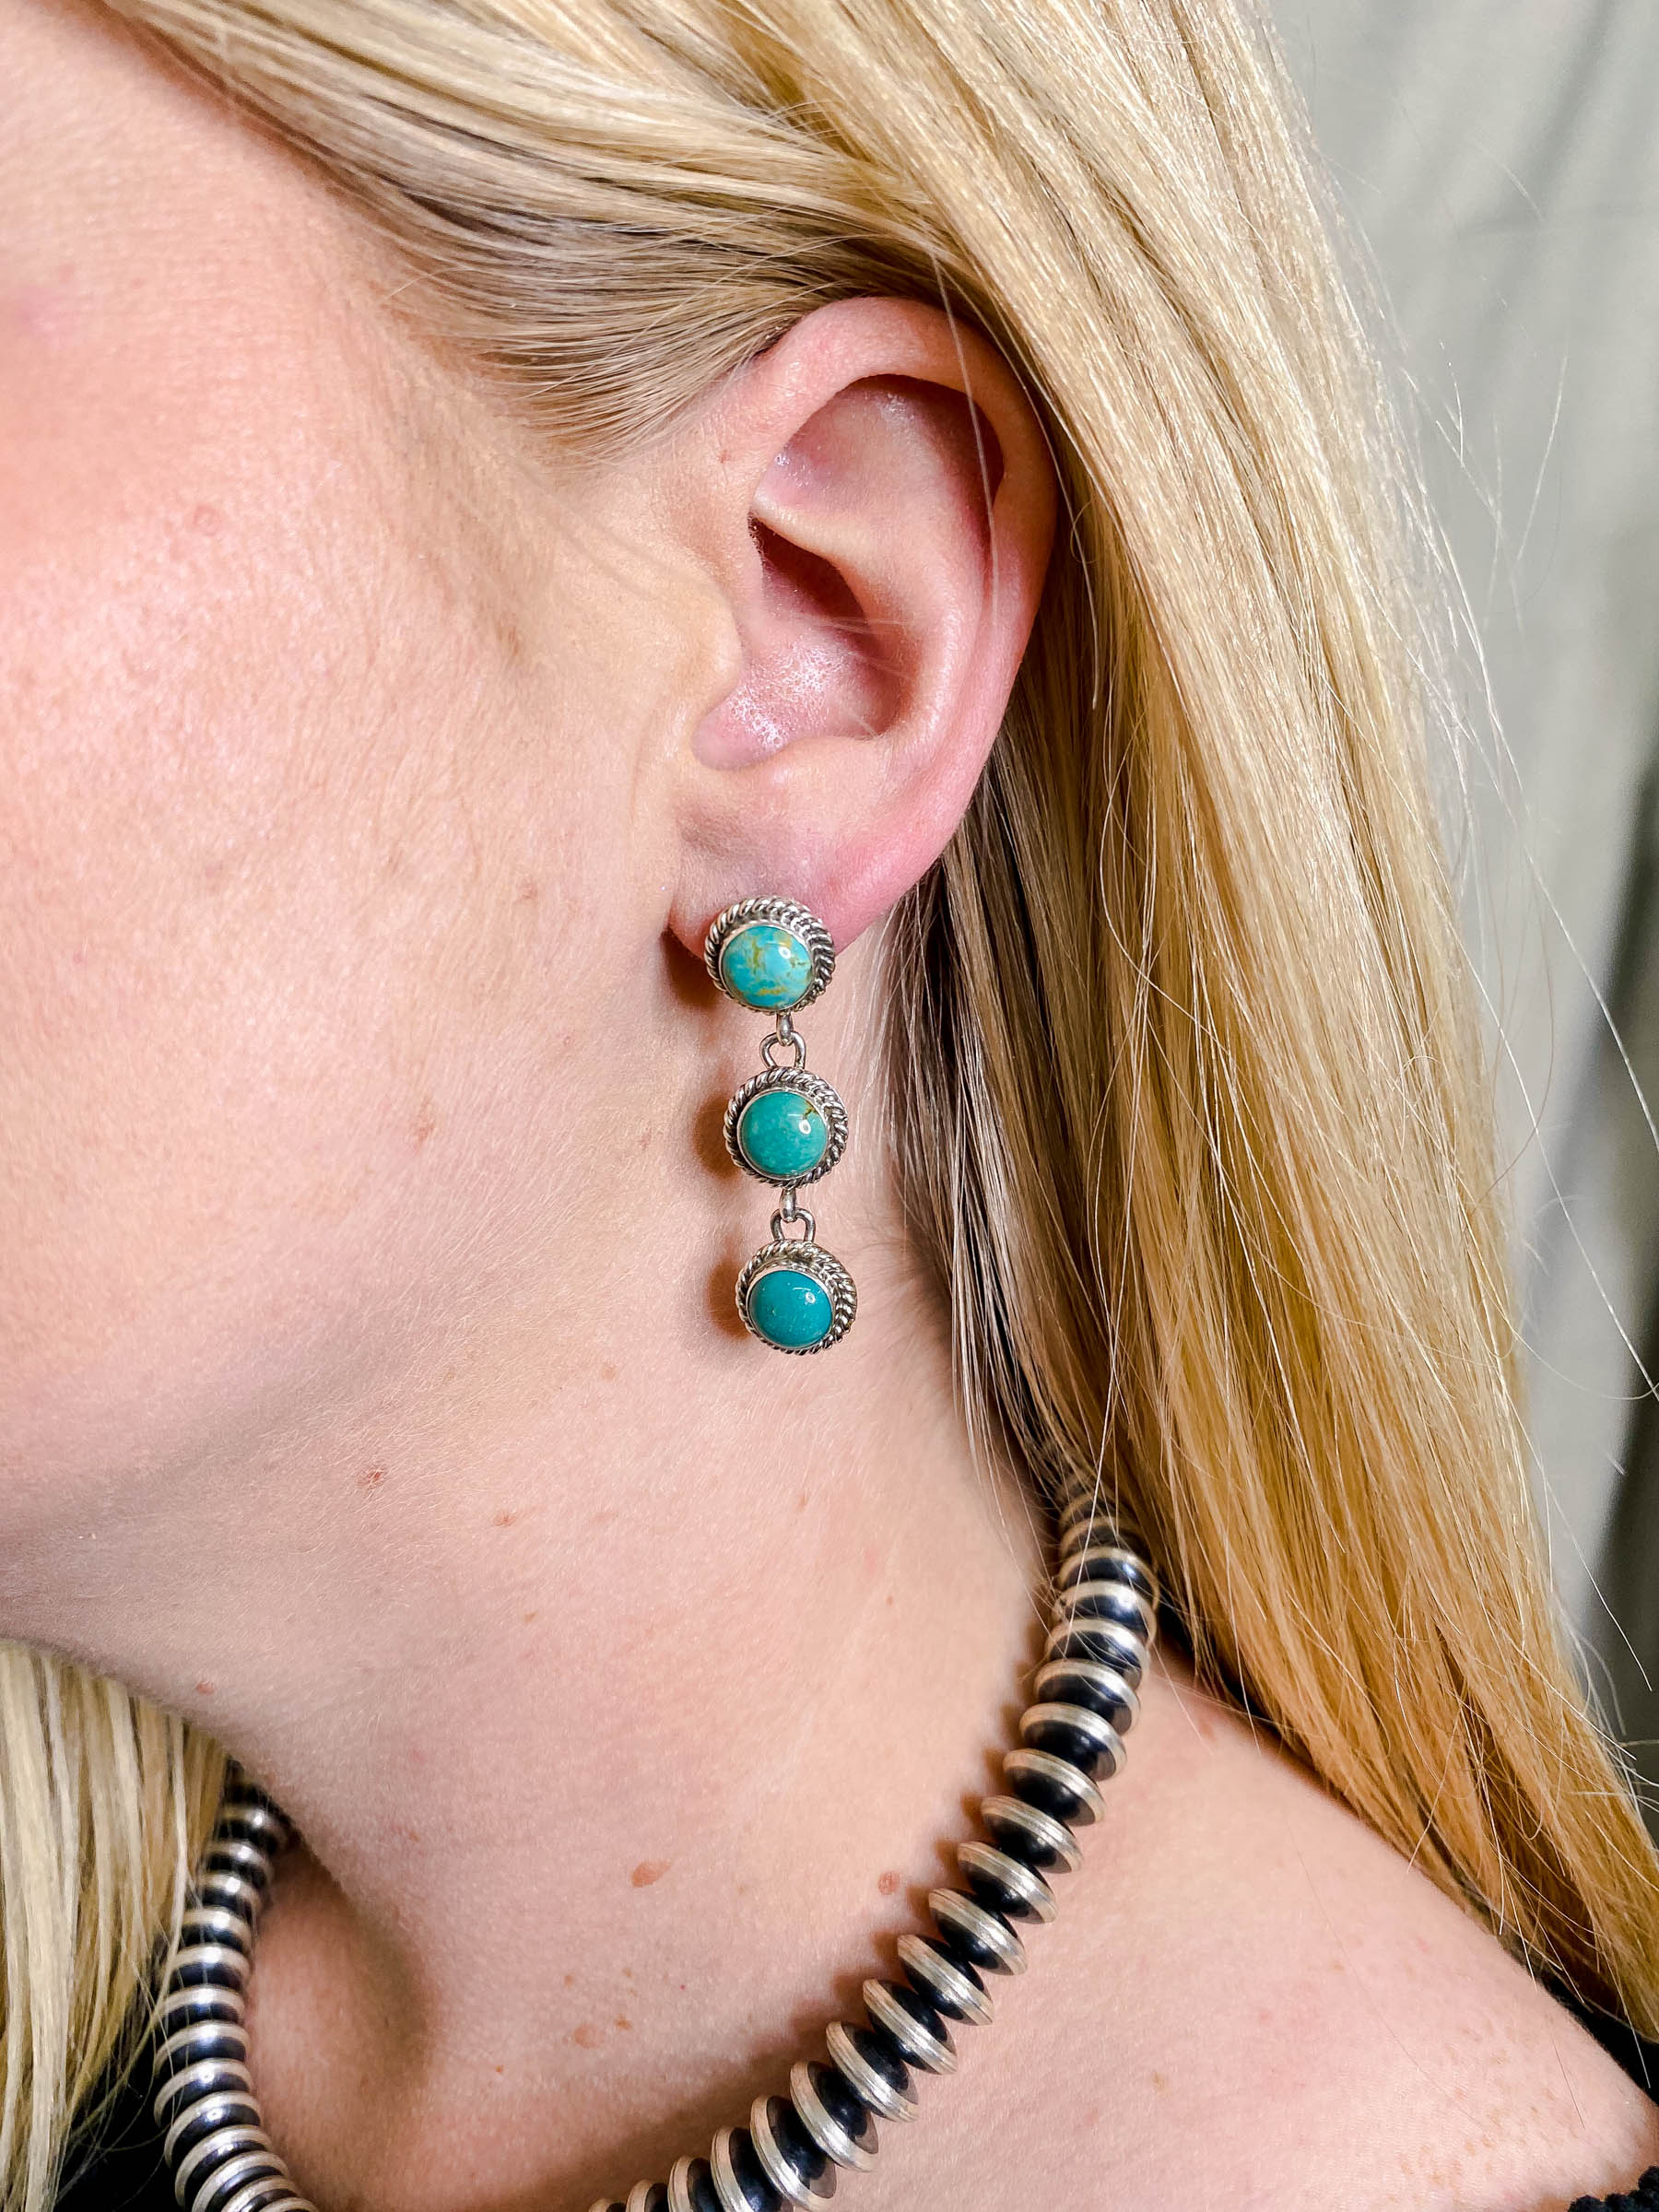 Turquoise Triple Threat Earring